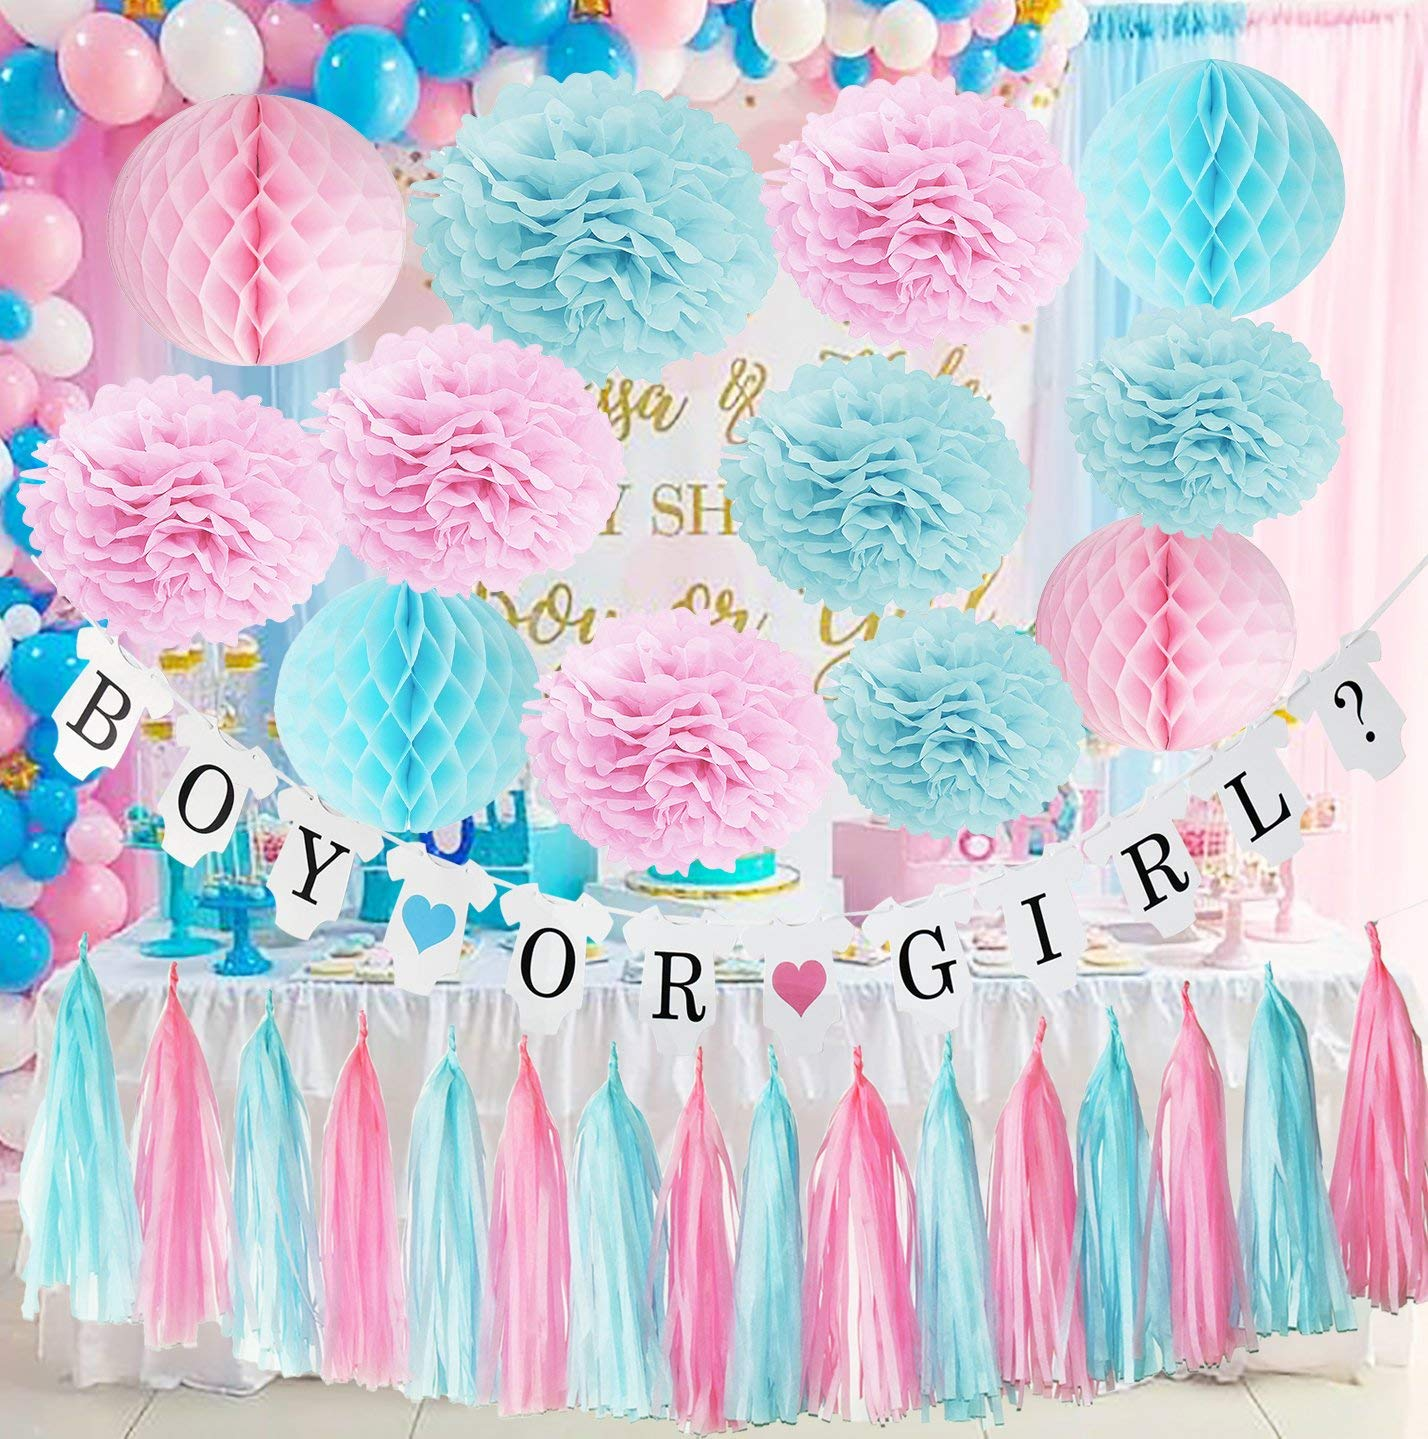 Gender Reveal Party Supplies Boy or Girl Banner - Boy or Girl Party Decorations Baby Shower Baby Shower Party,Newborn Baby Celebration Pink and Blue Decorations/Gender Reveal Decorations